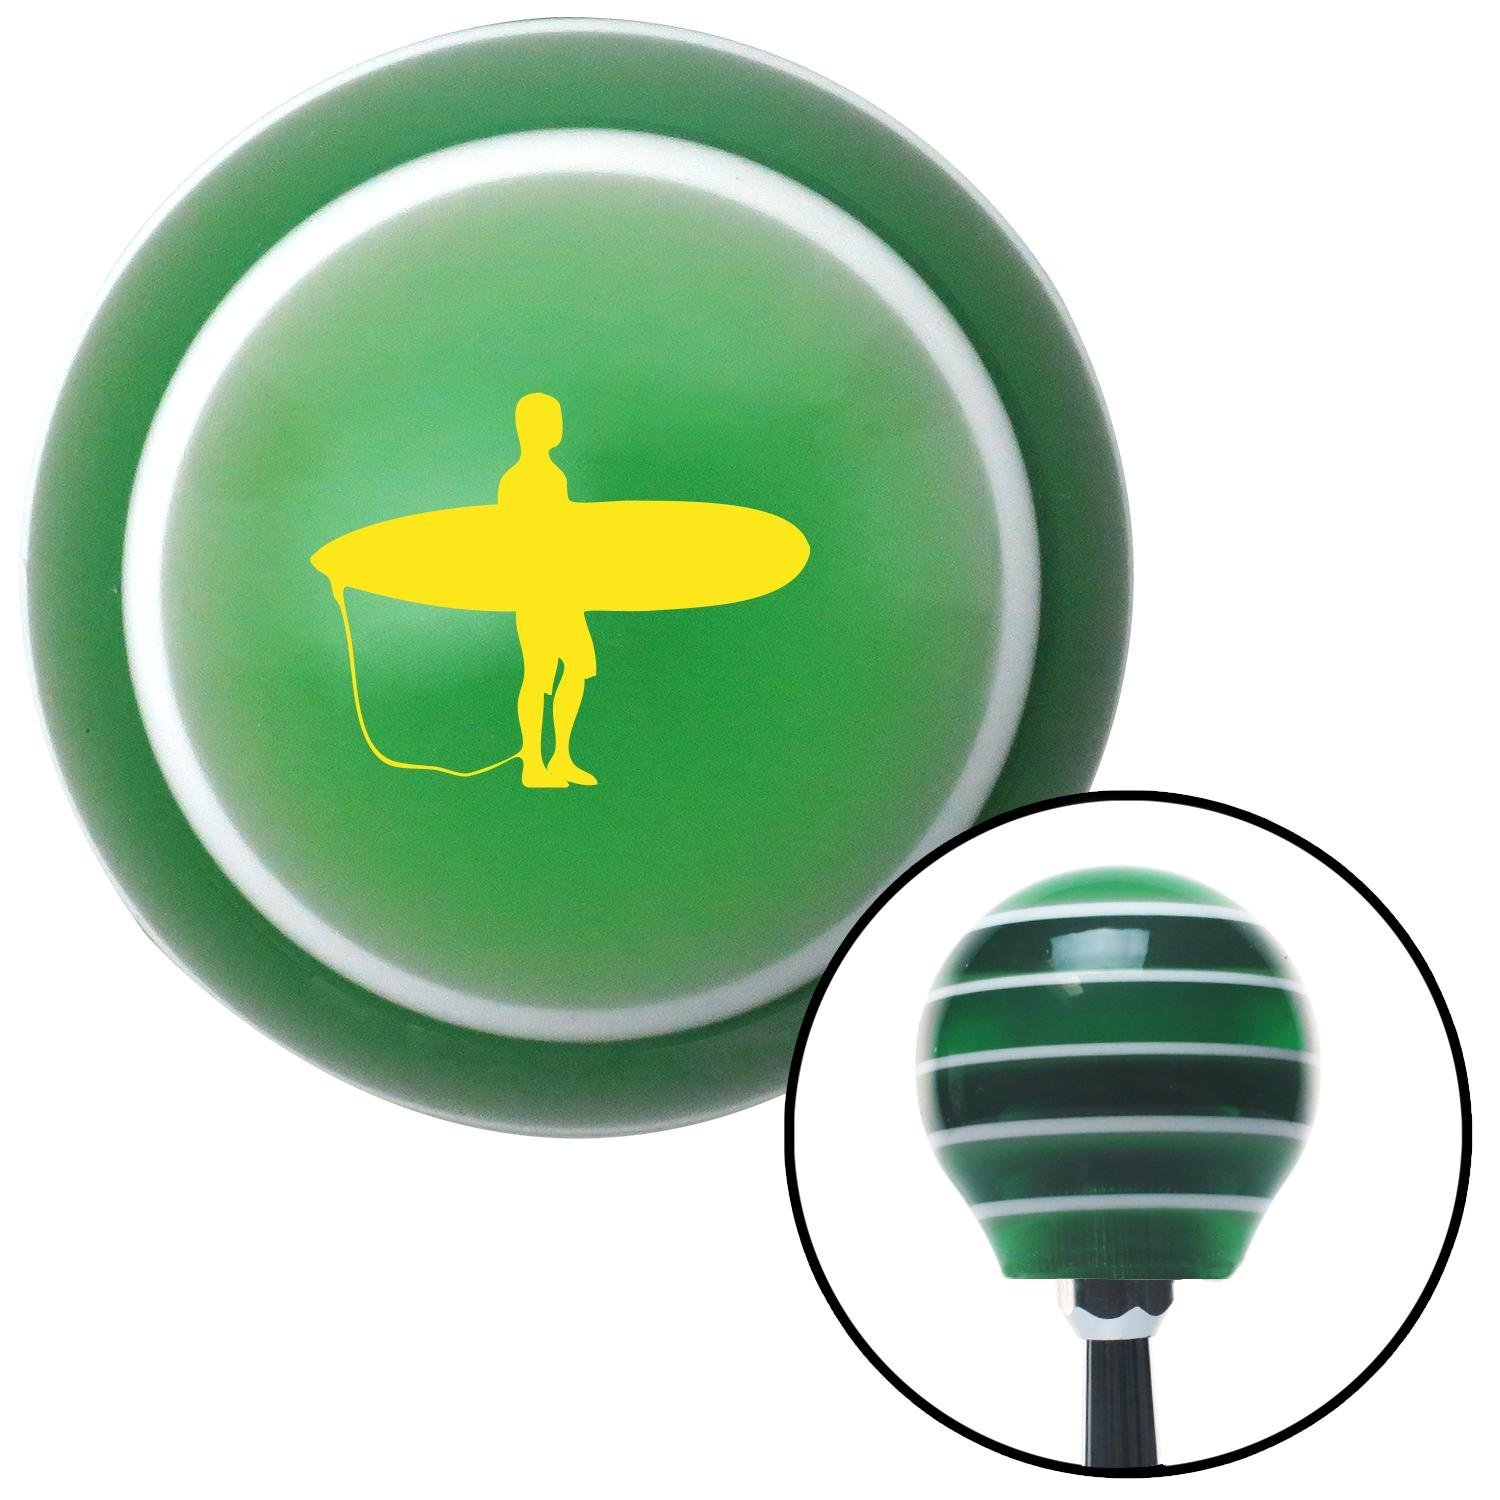 American Shifter 128454 Green Stripe Shift Knob with M16 x 1.5 Insert Yellow Surfer